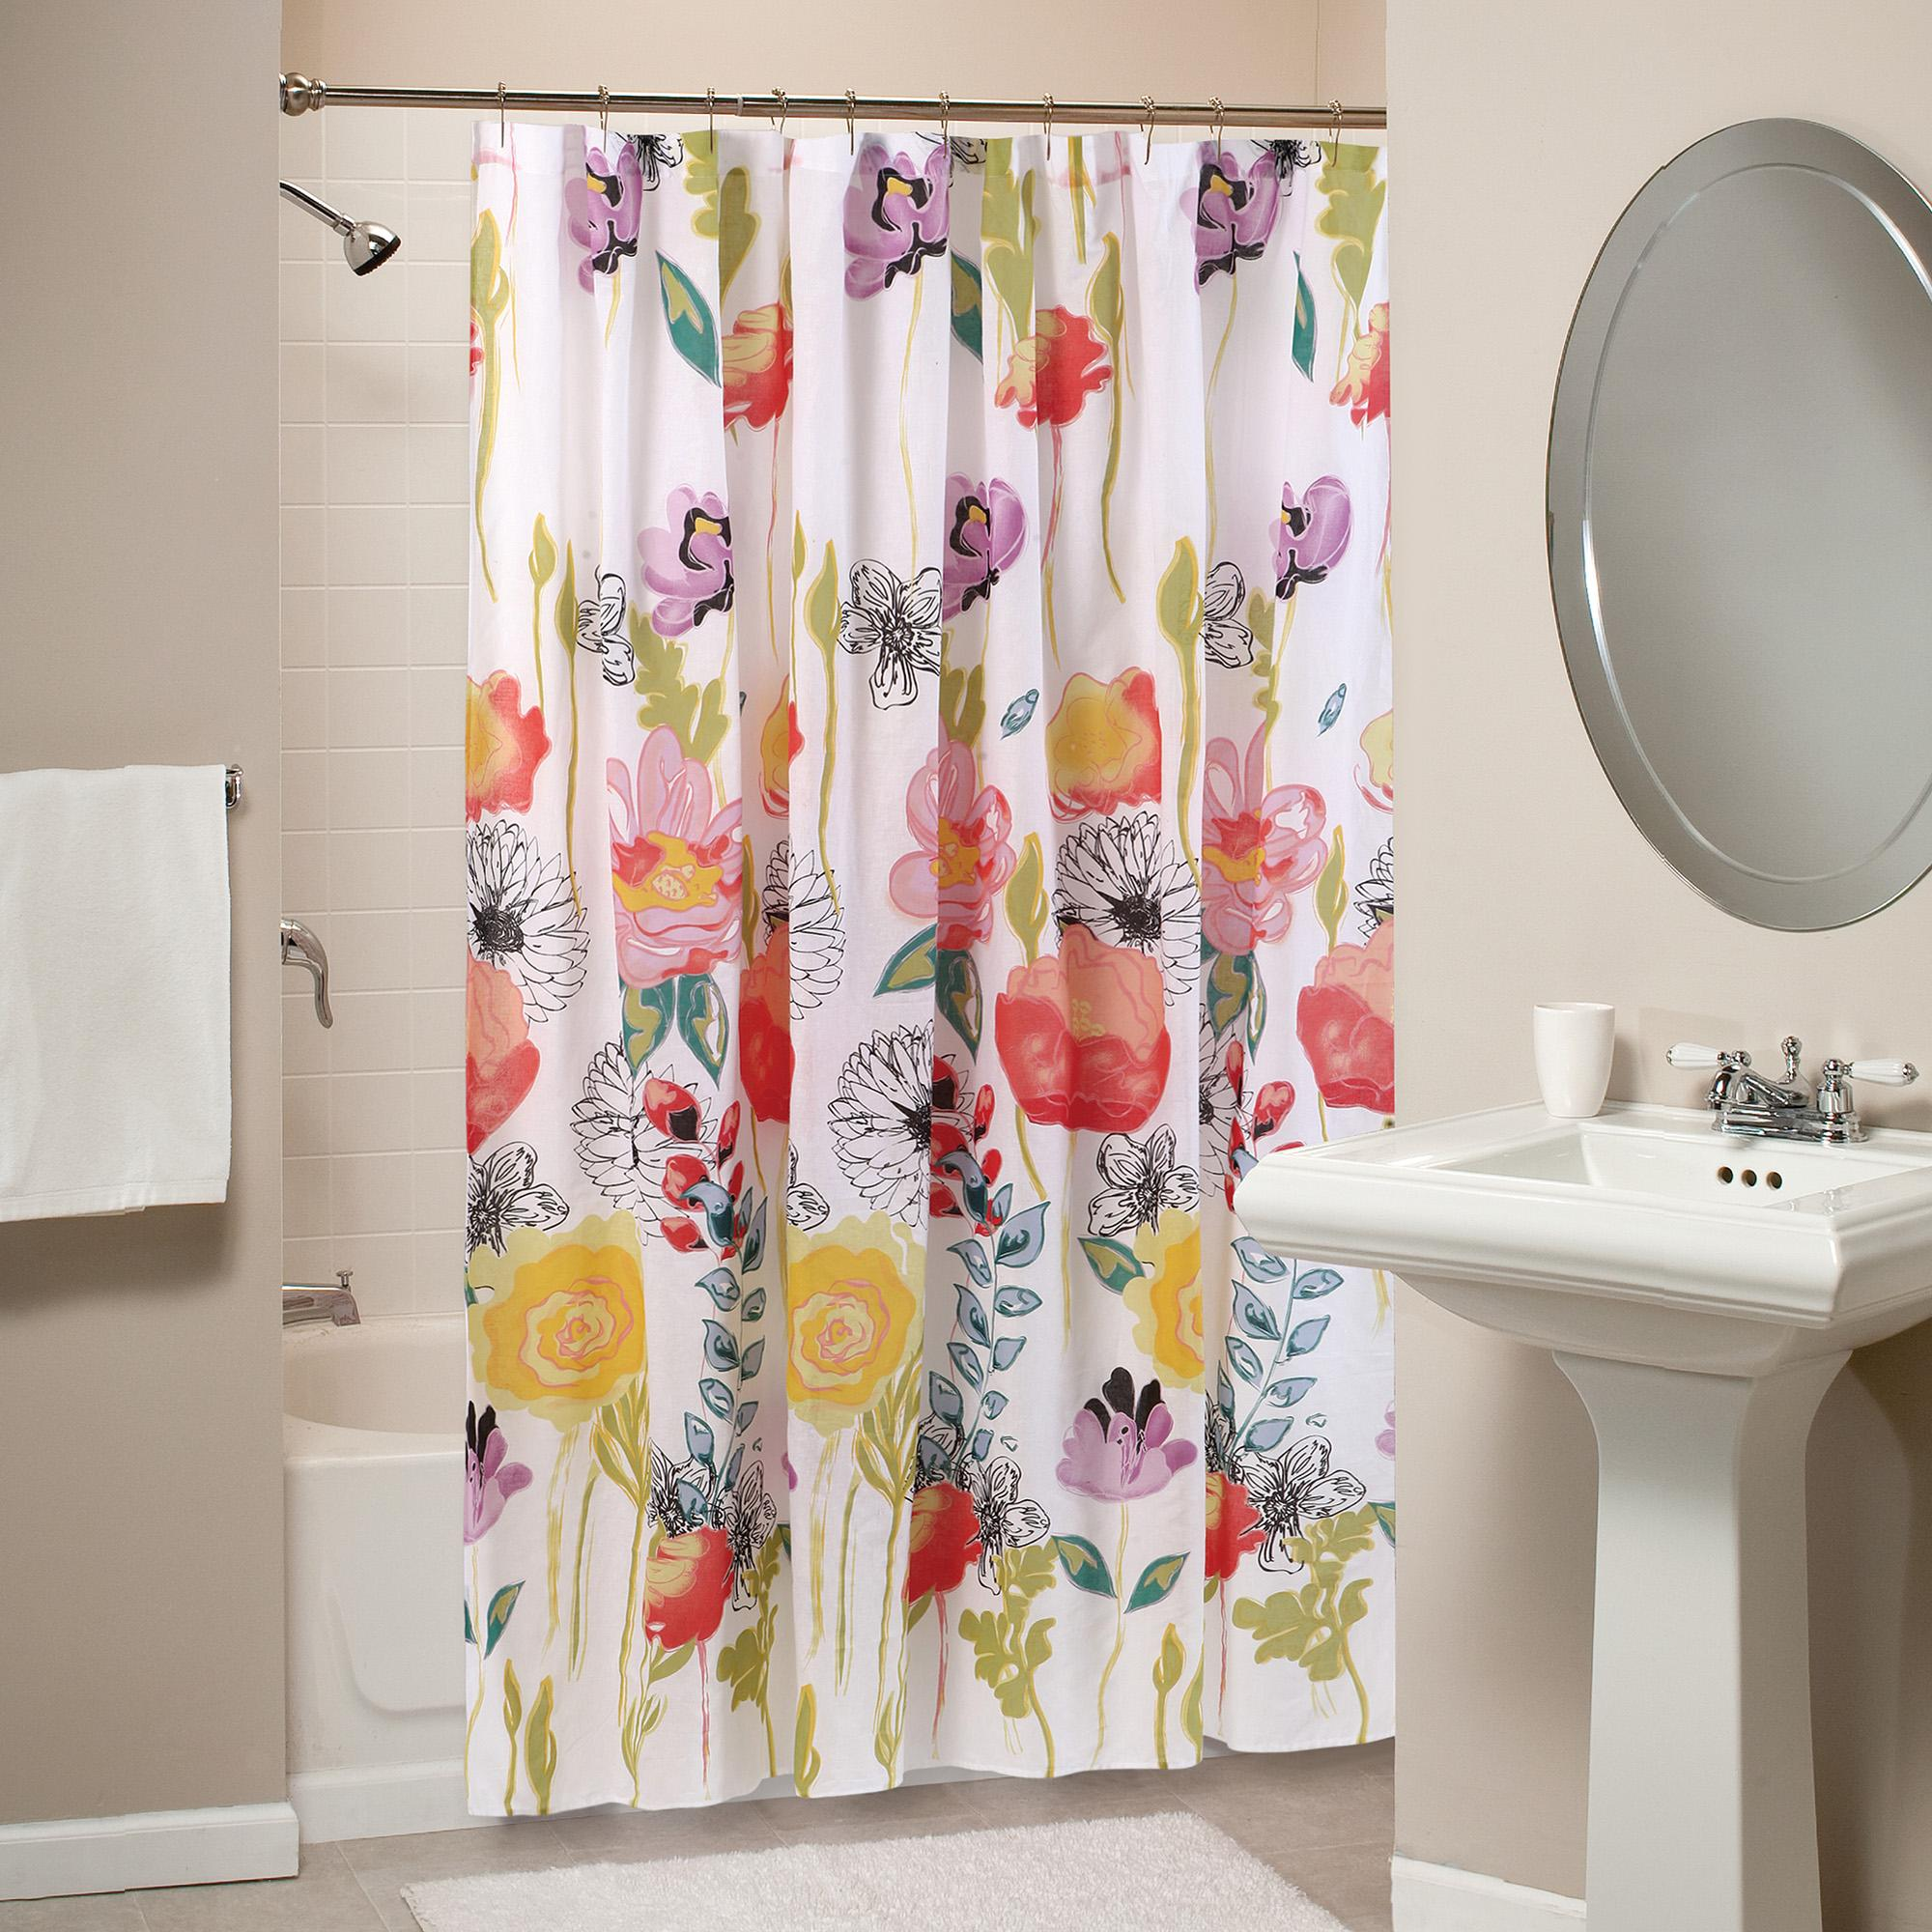 Blue Shower Curtain | Floral Print Shower Curtain | Floral Shower Curtain